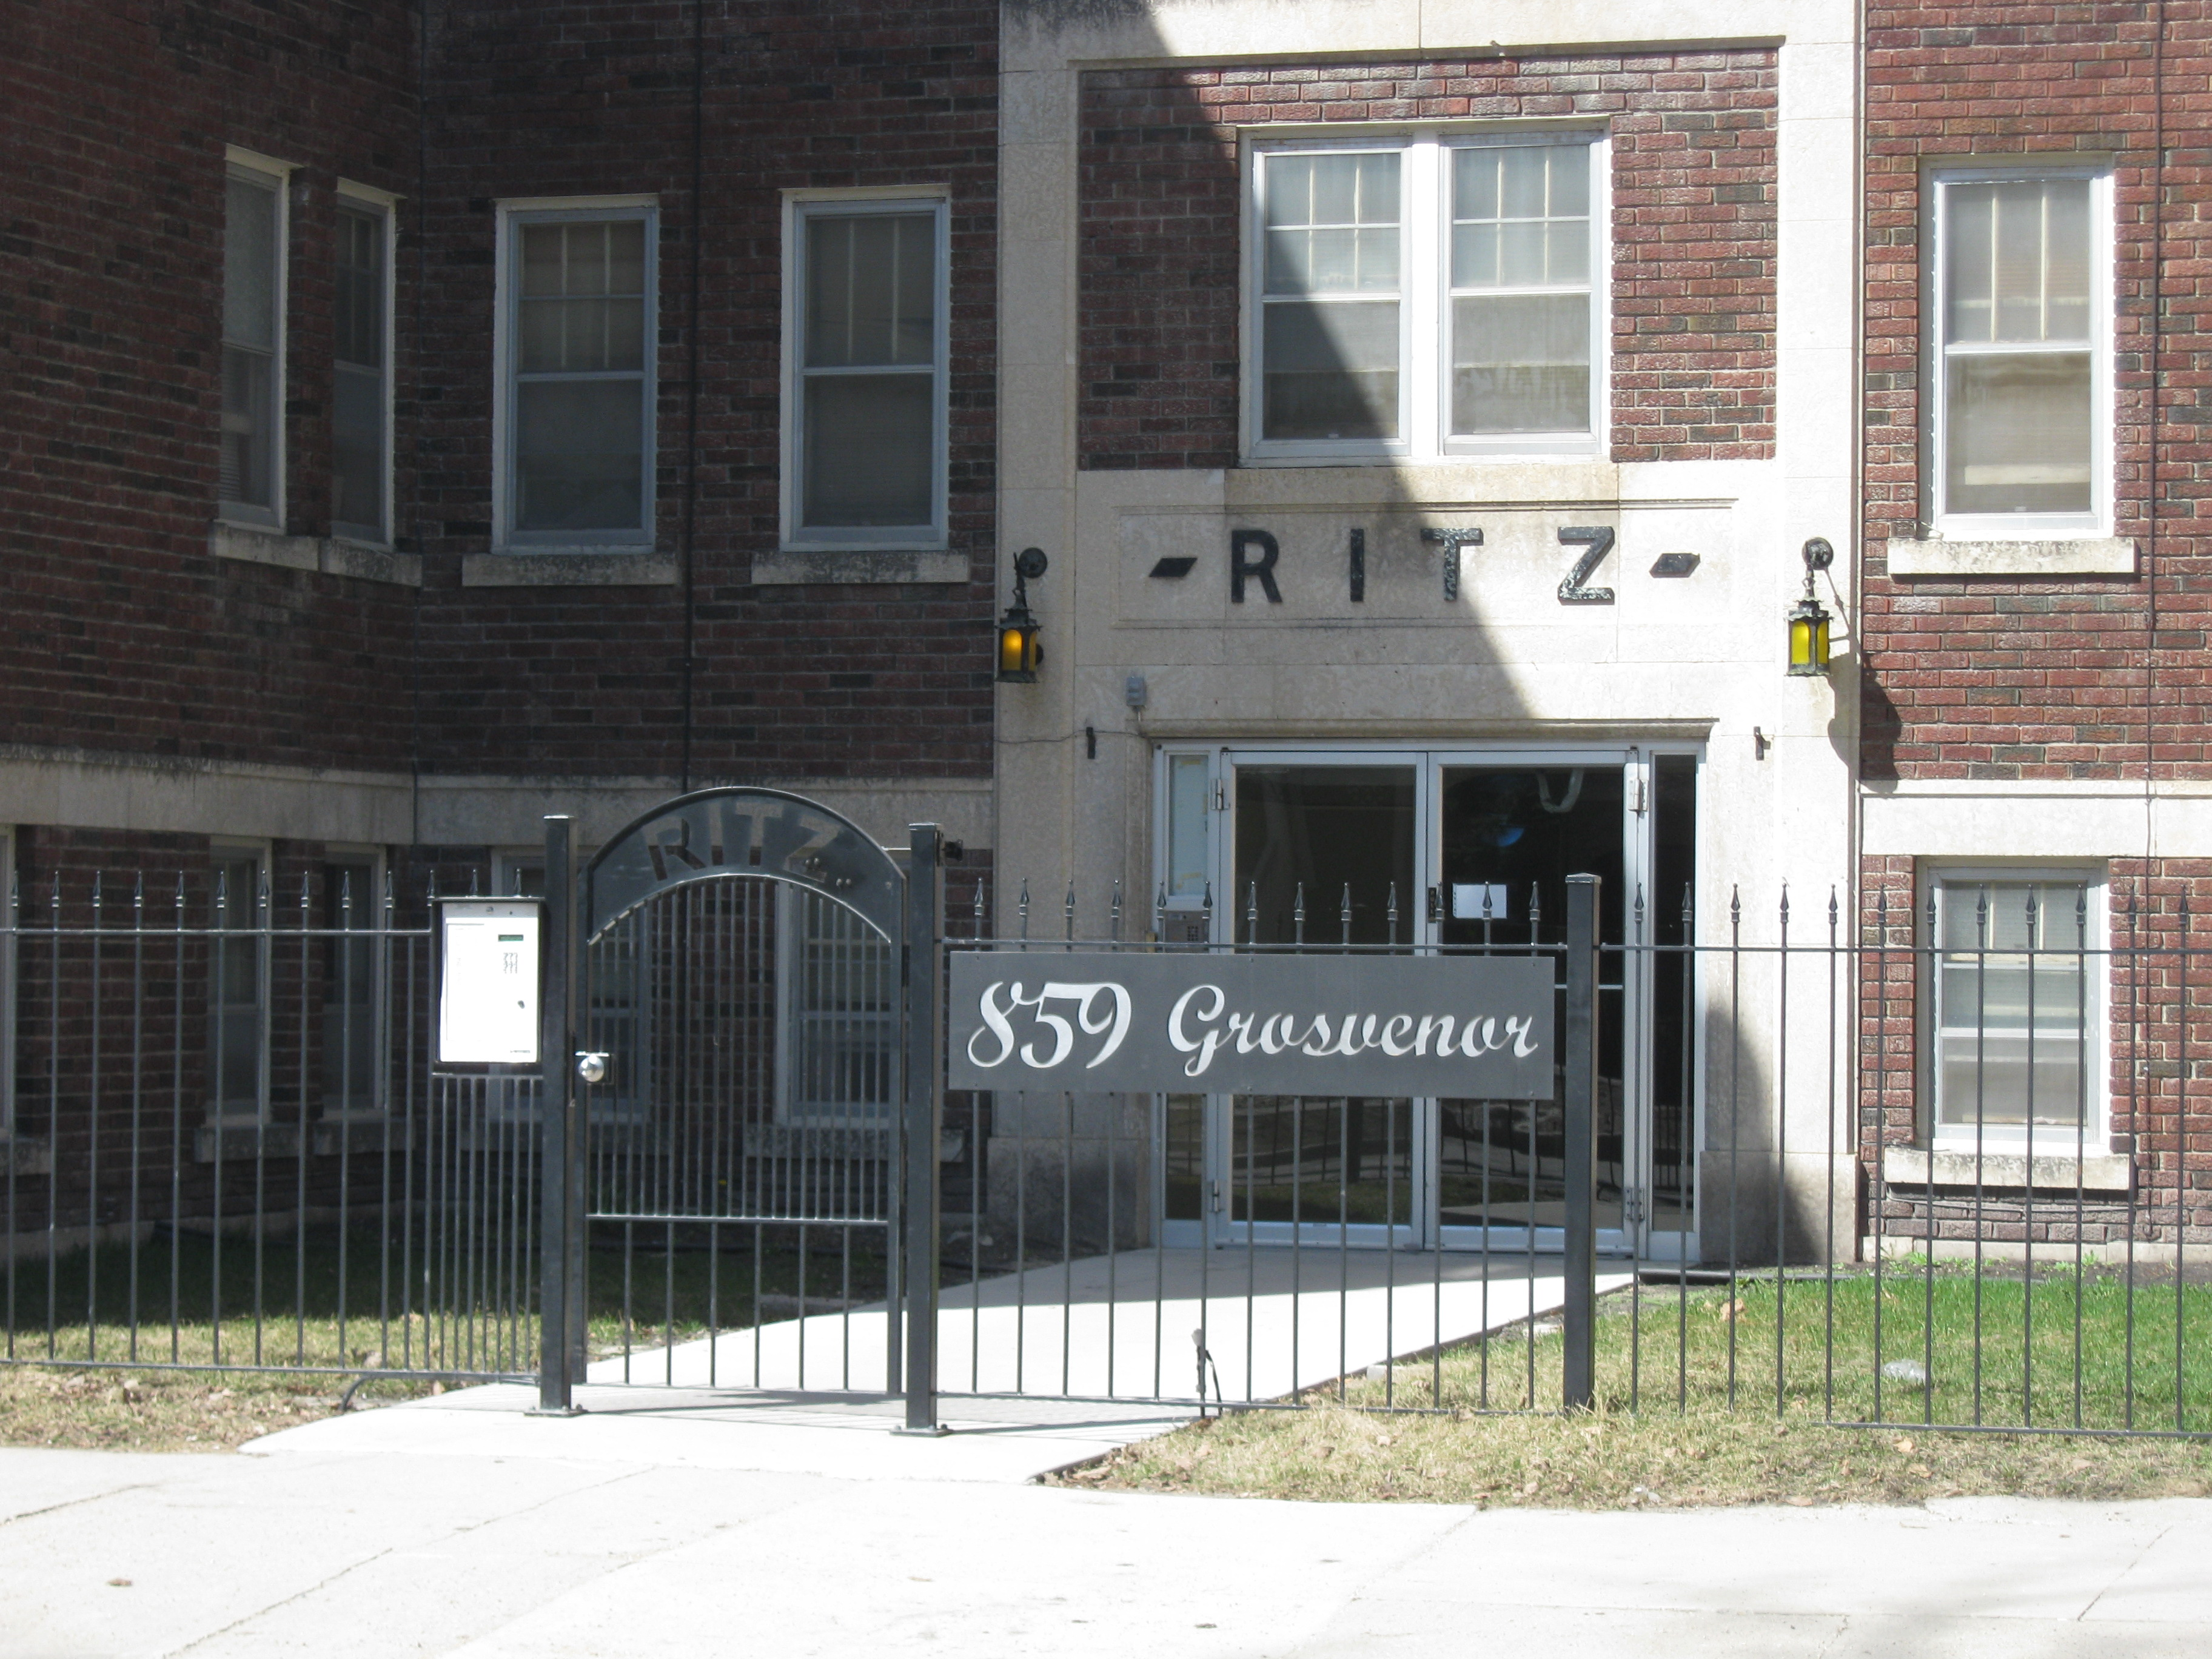 Apartments For Rent: The Ritz Apartments